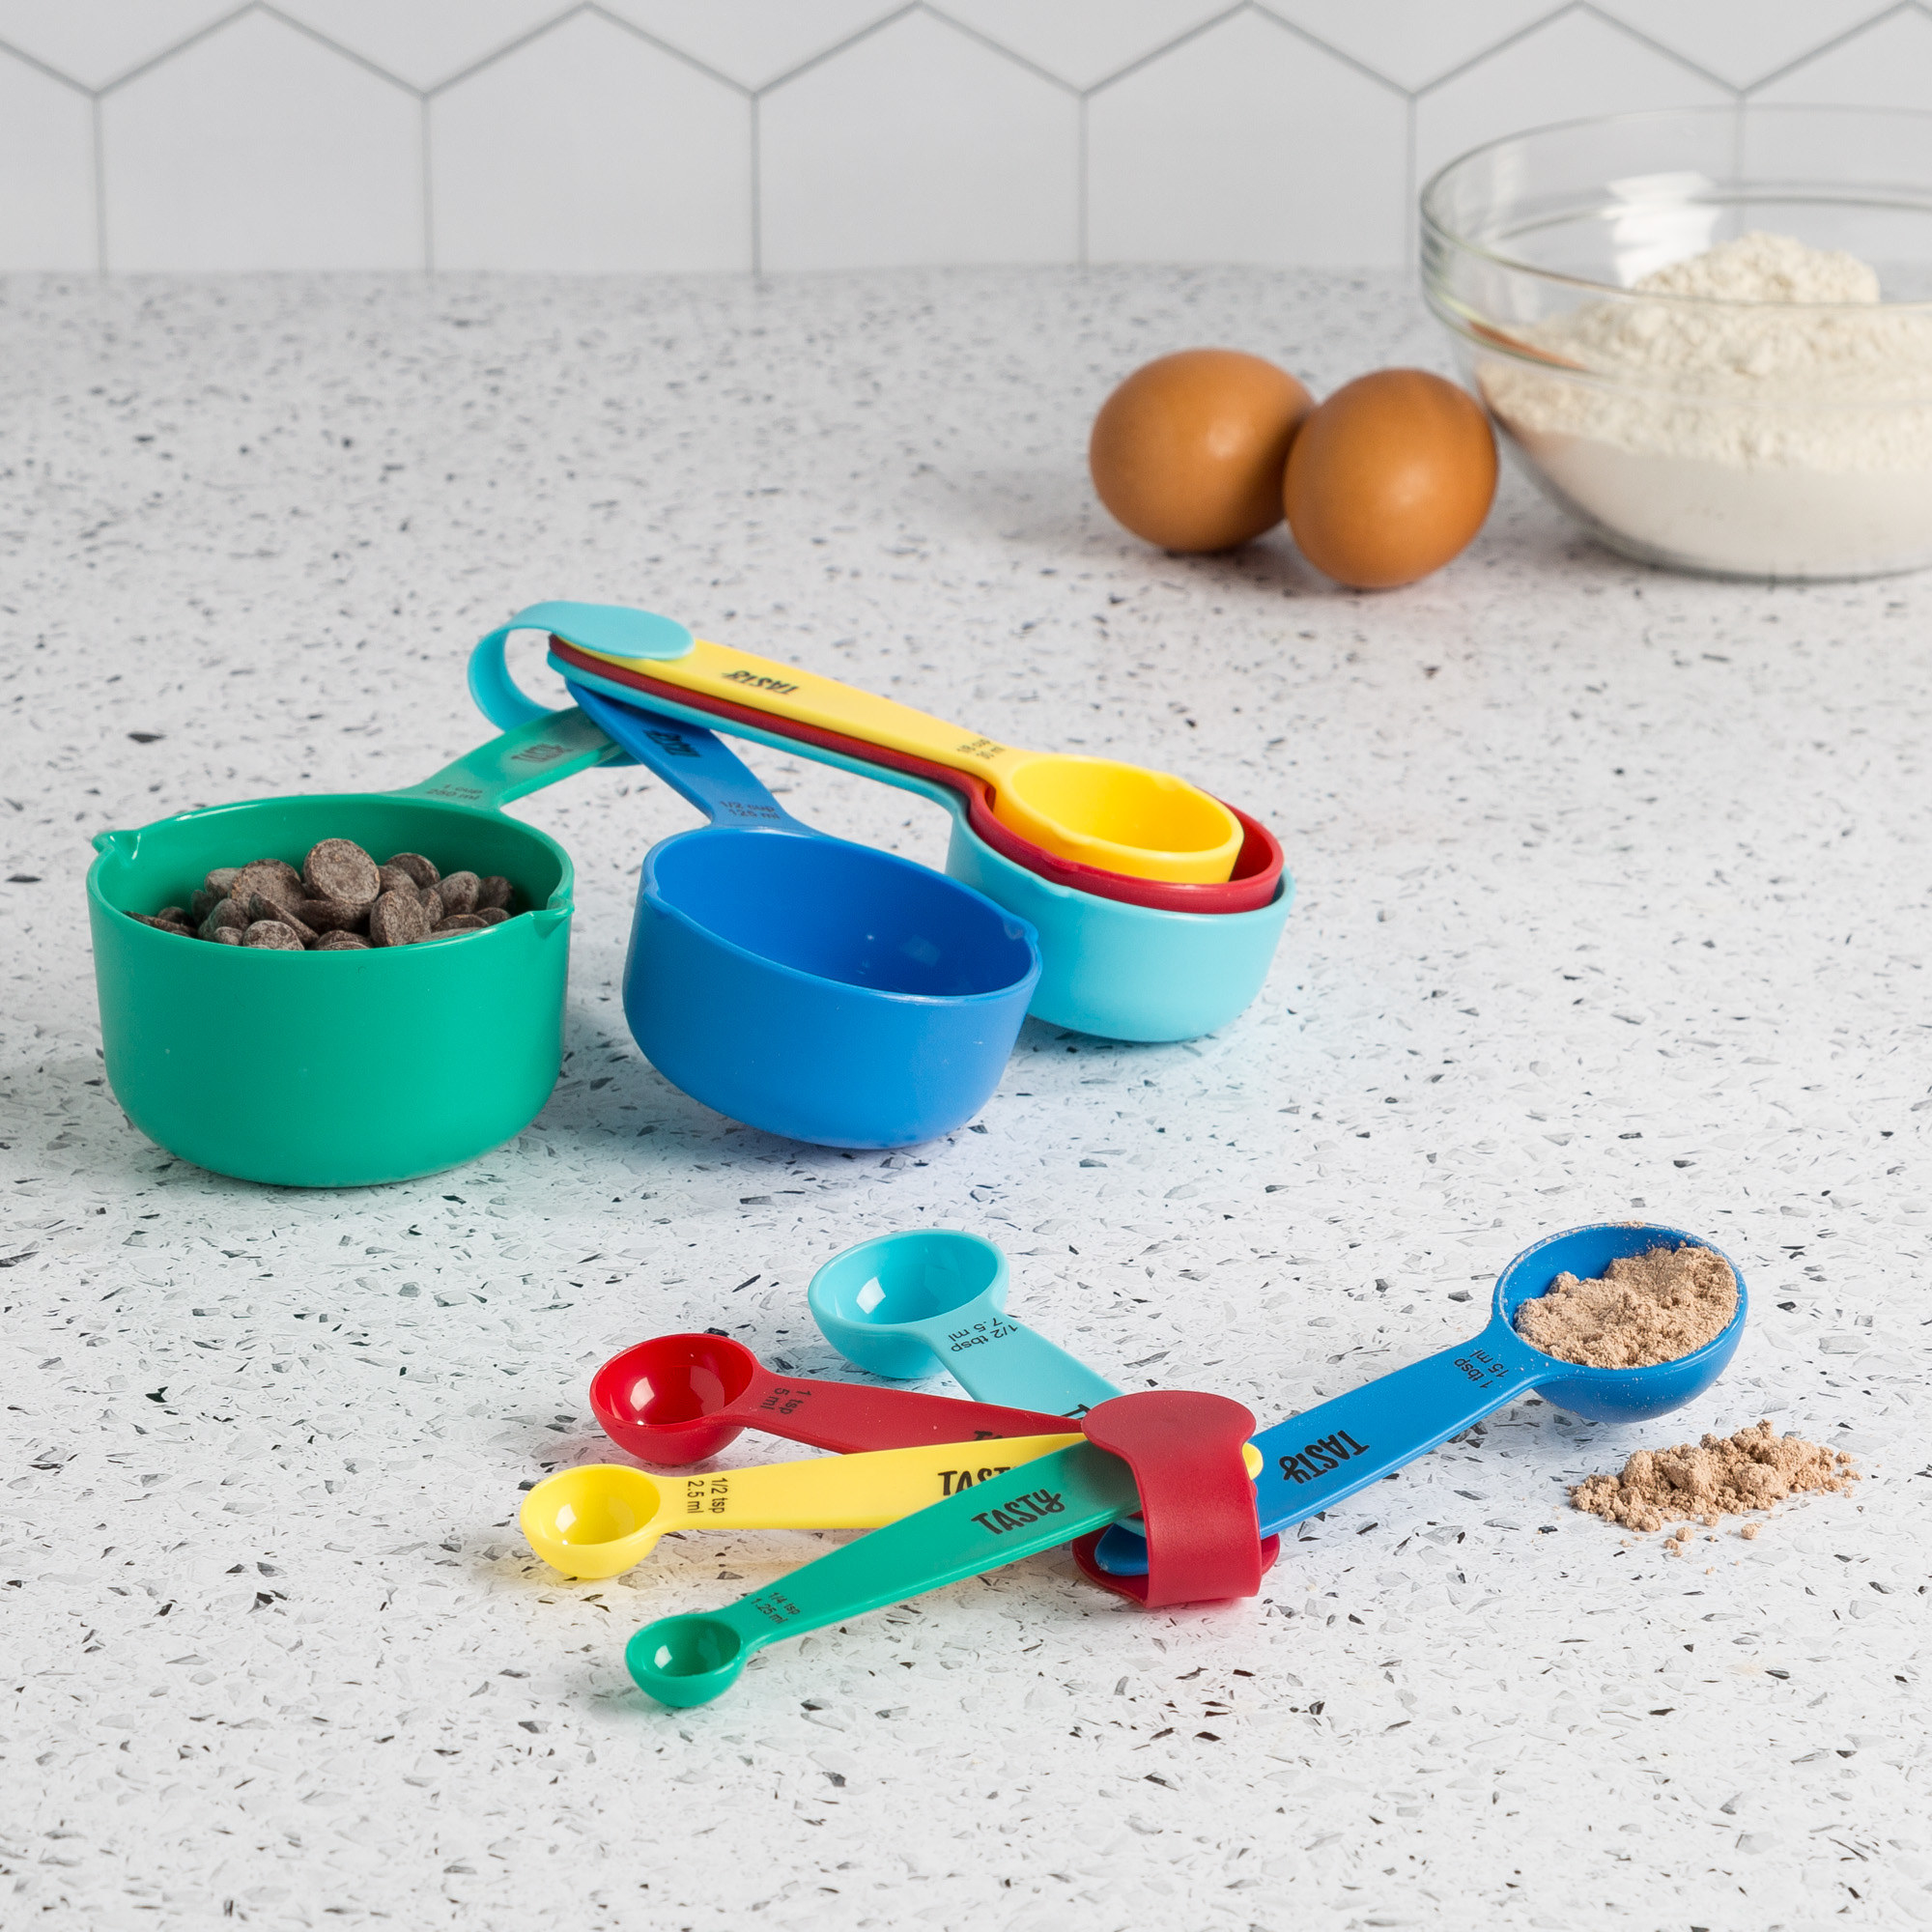 The measuring cups spread out and holding ingredients to show the sizes of each